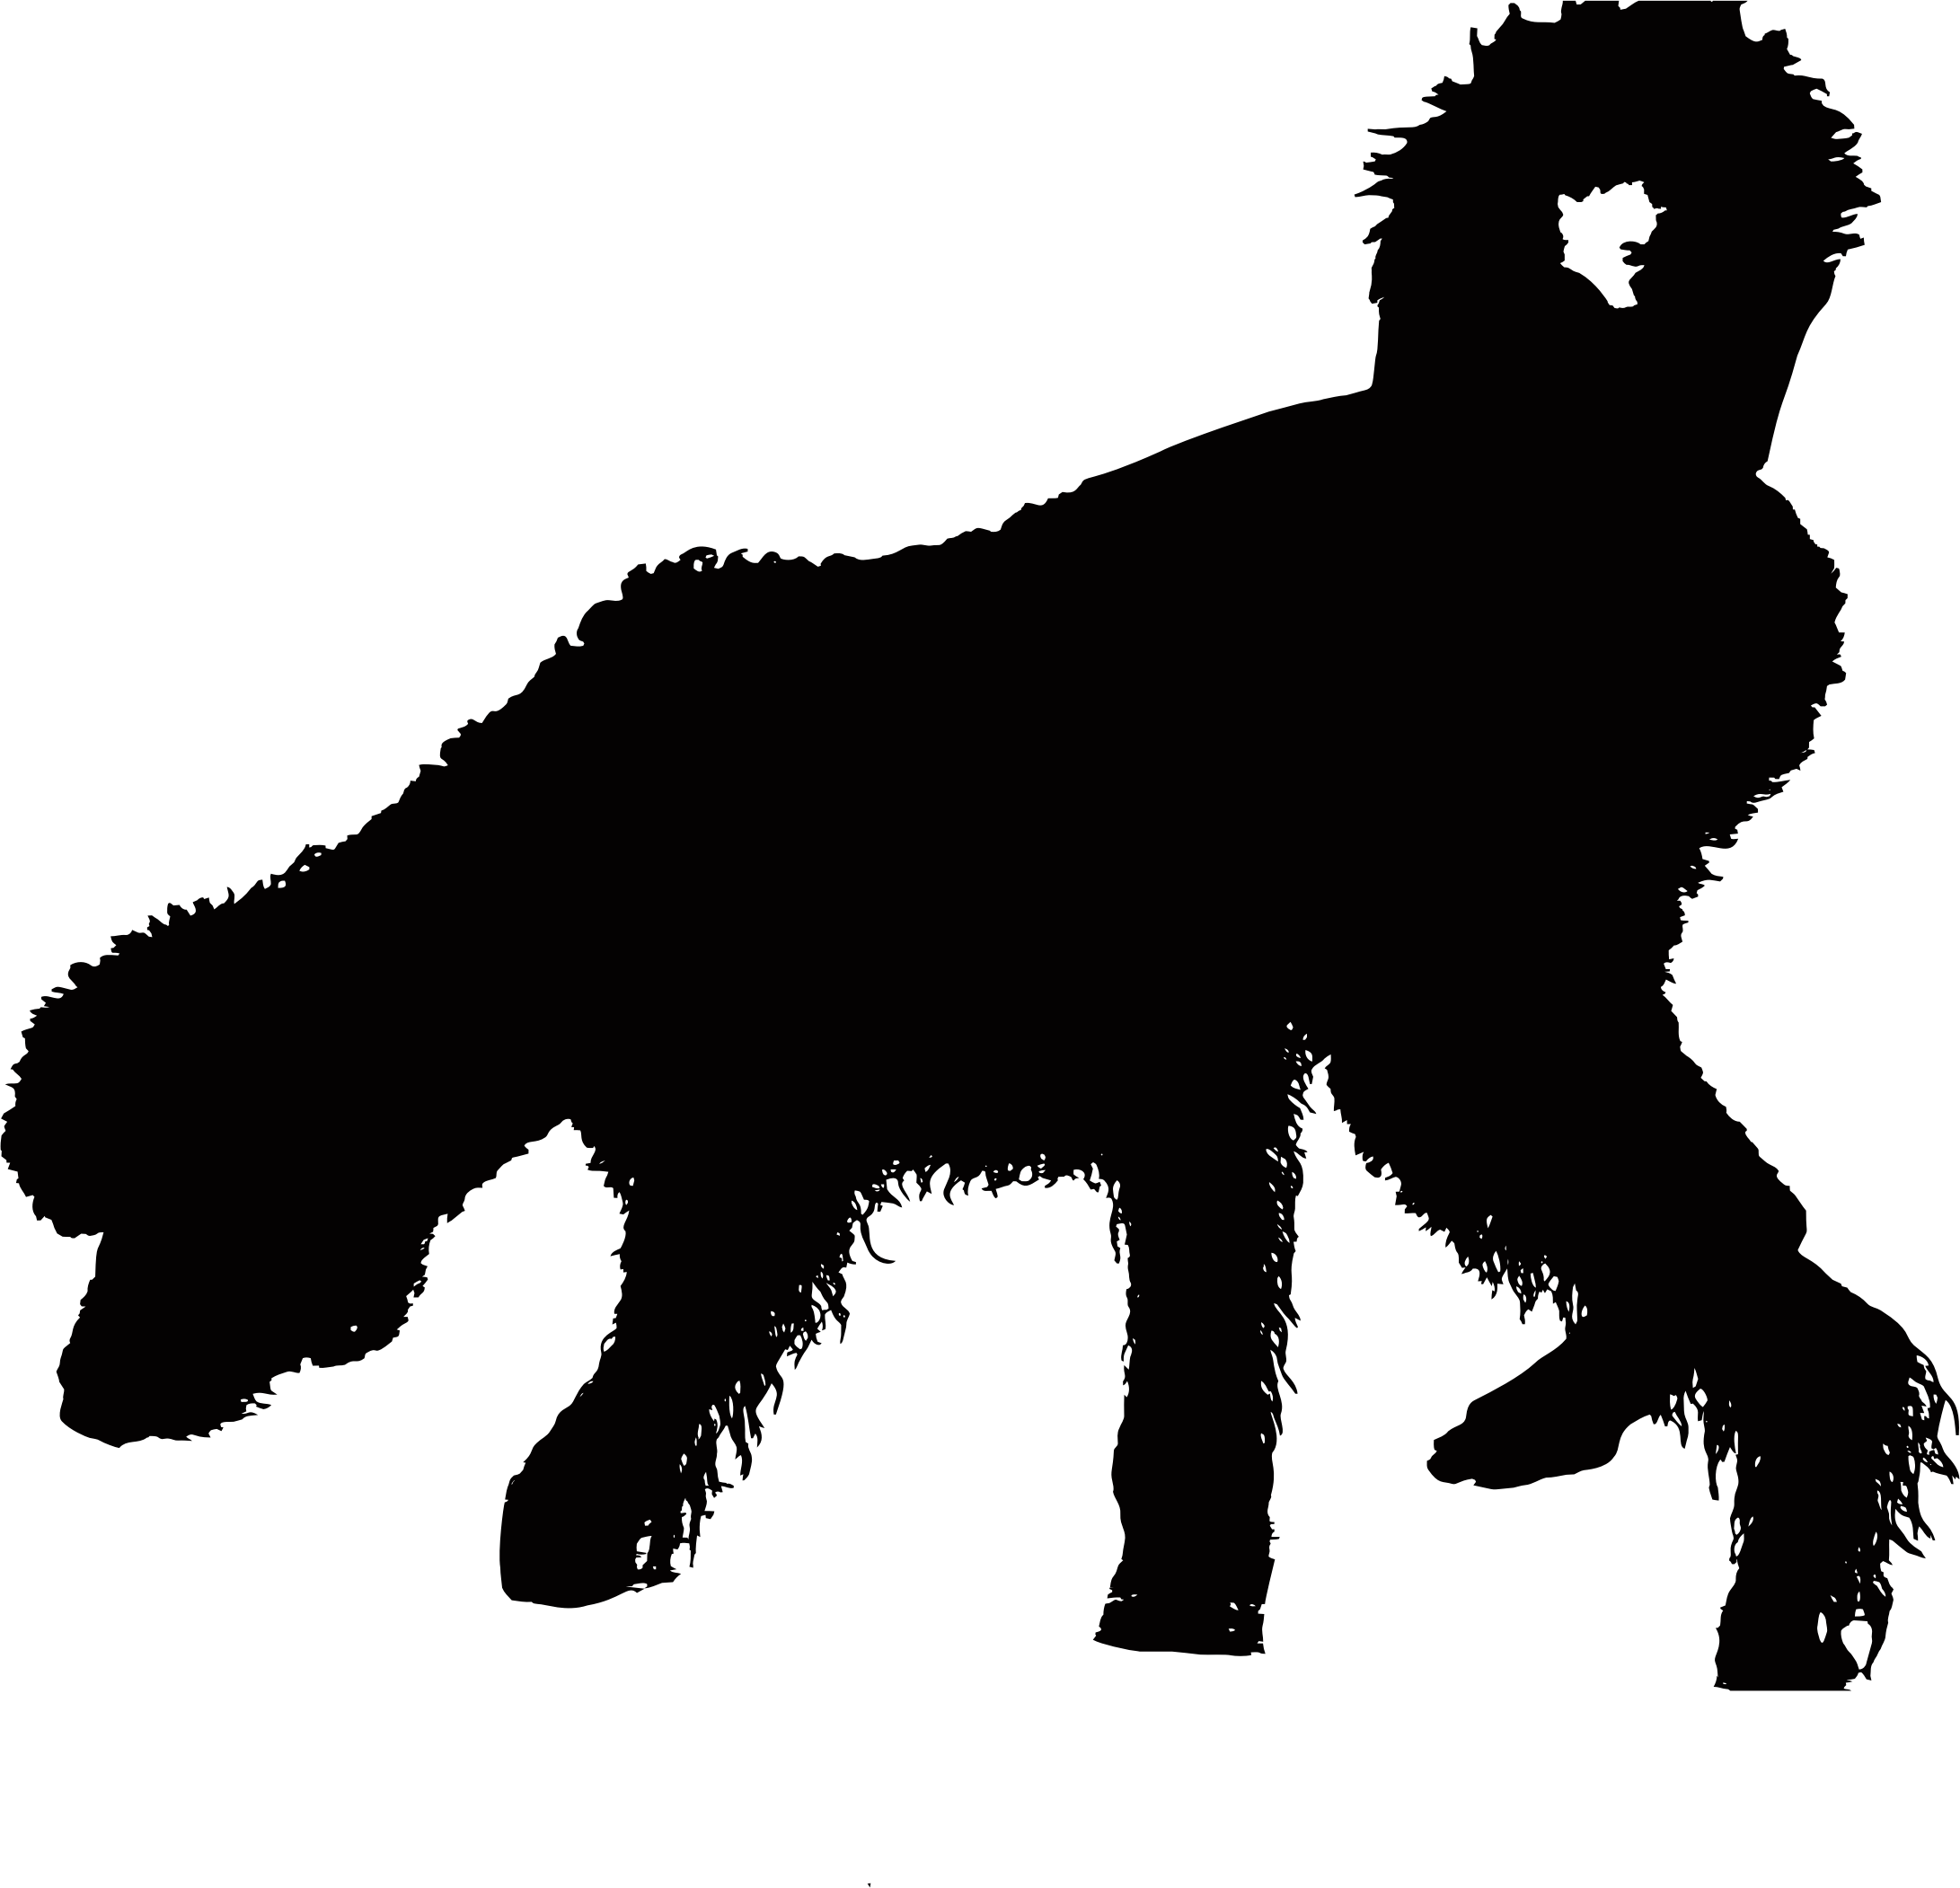 Shaggy dog silhouette big. Wet clipart wet puppy